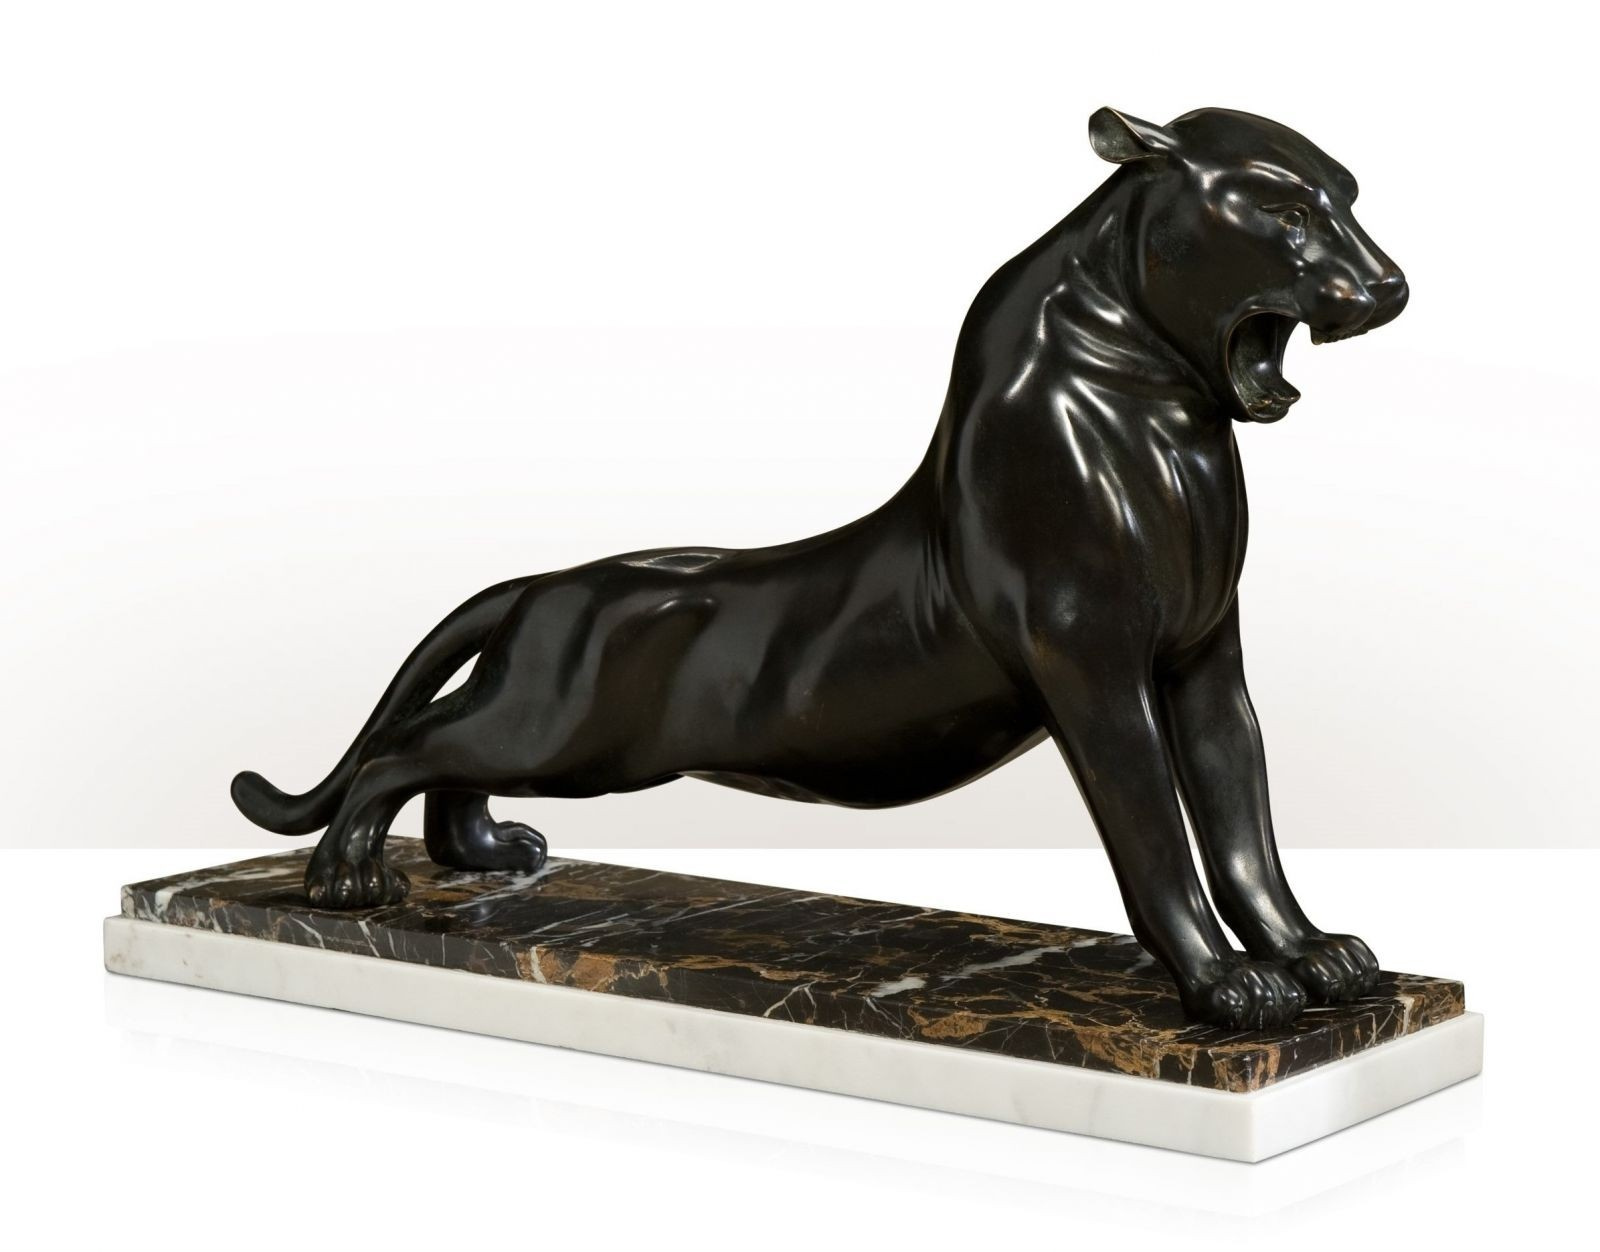 brass sculpture of a roaring panther